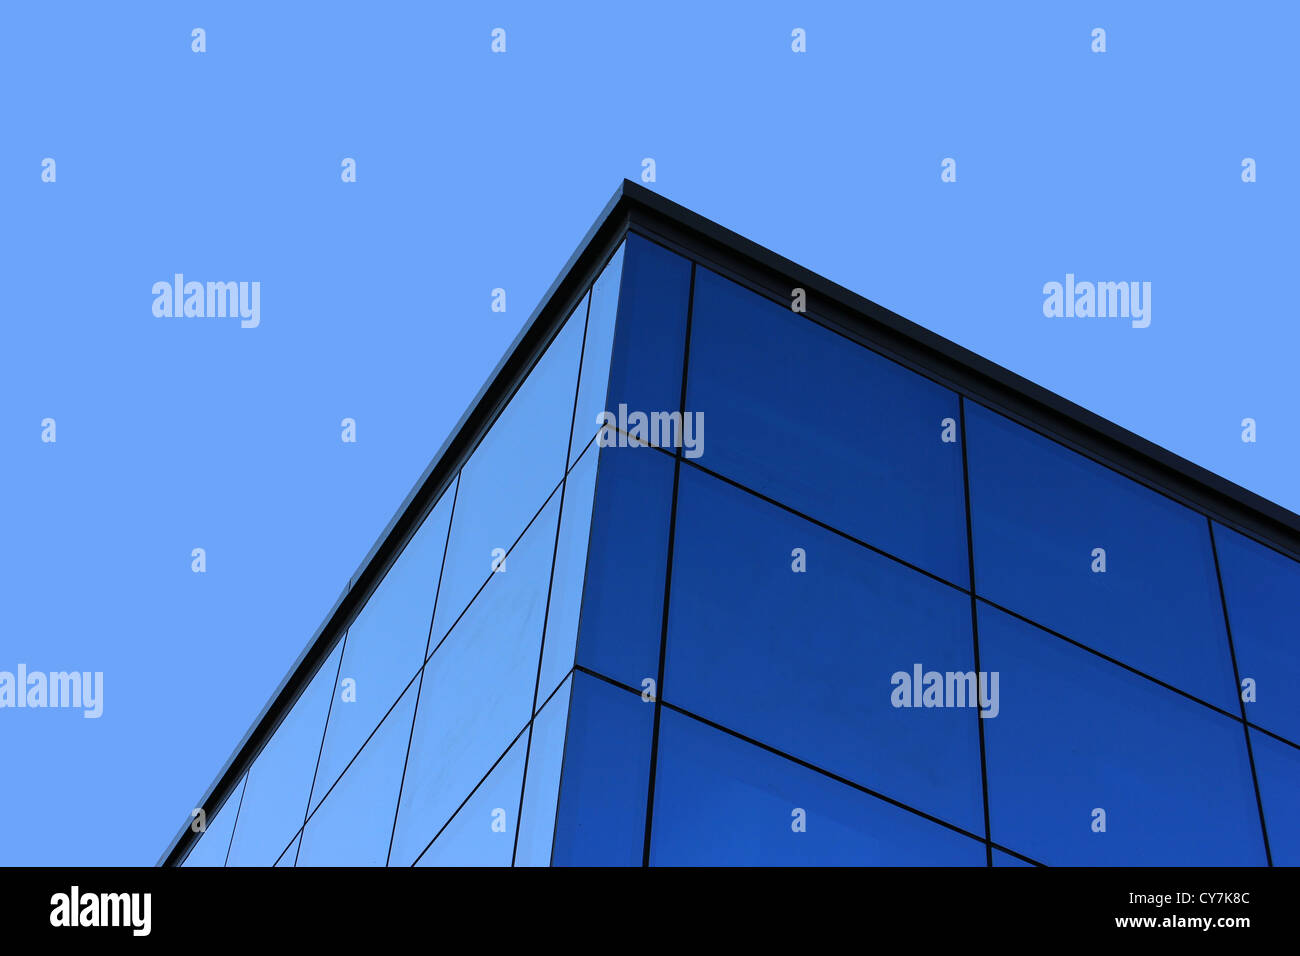 Blue sky and glass construction detail - Stock Image